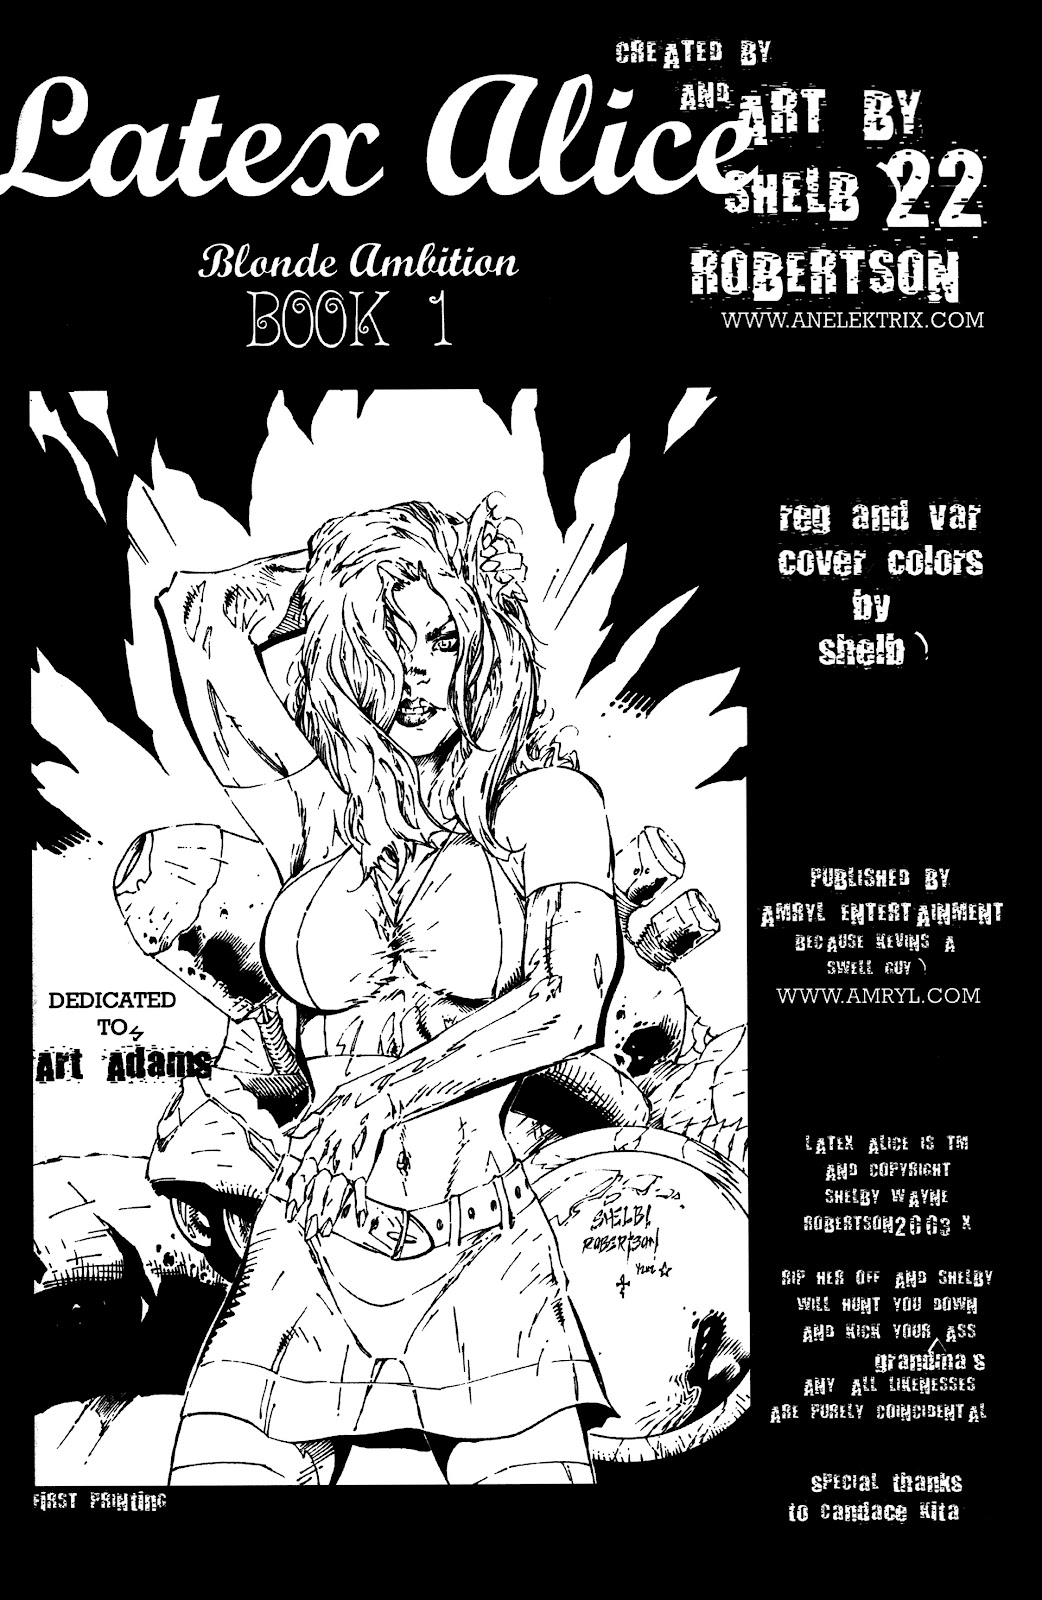 Read online Latex Alice - Blonde Ambition comic -  Issue # Full - 2